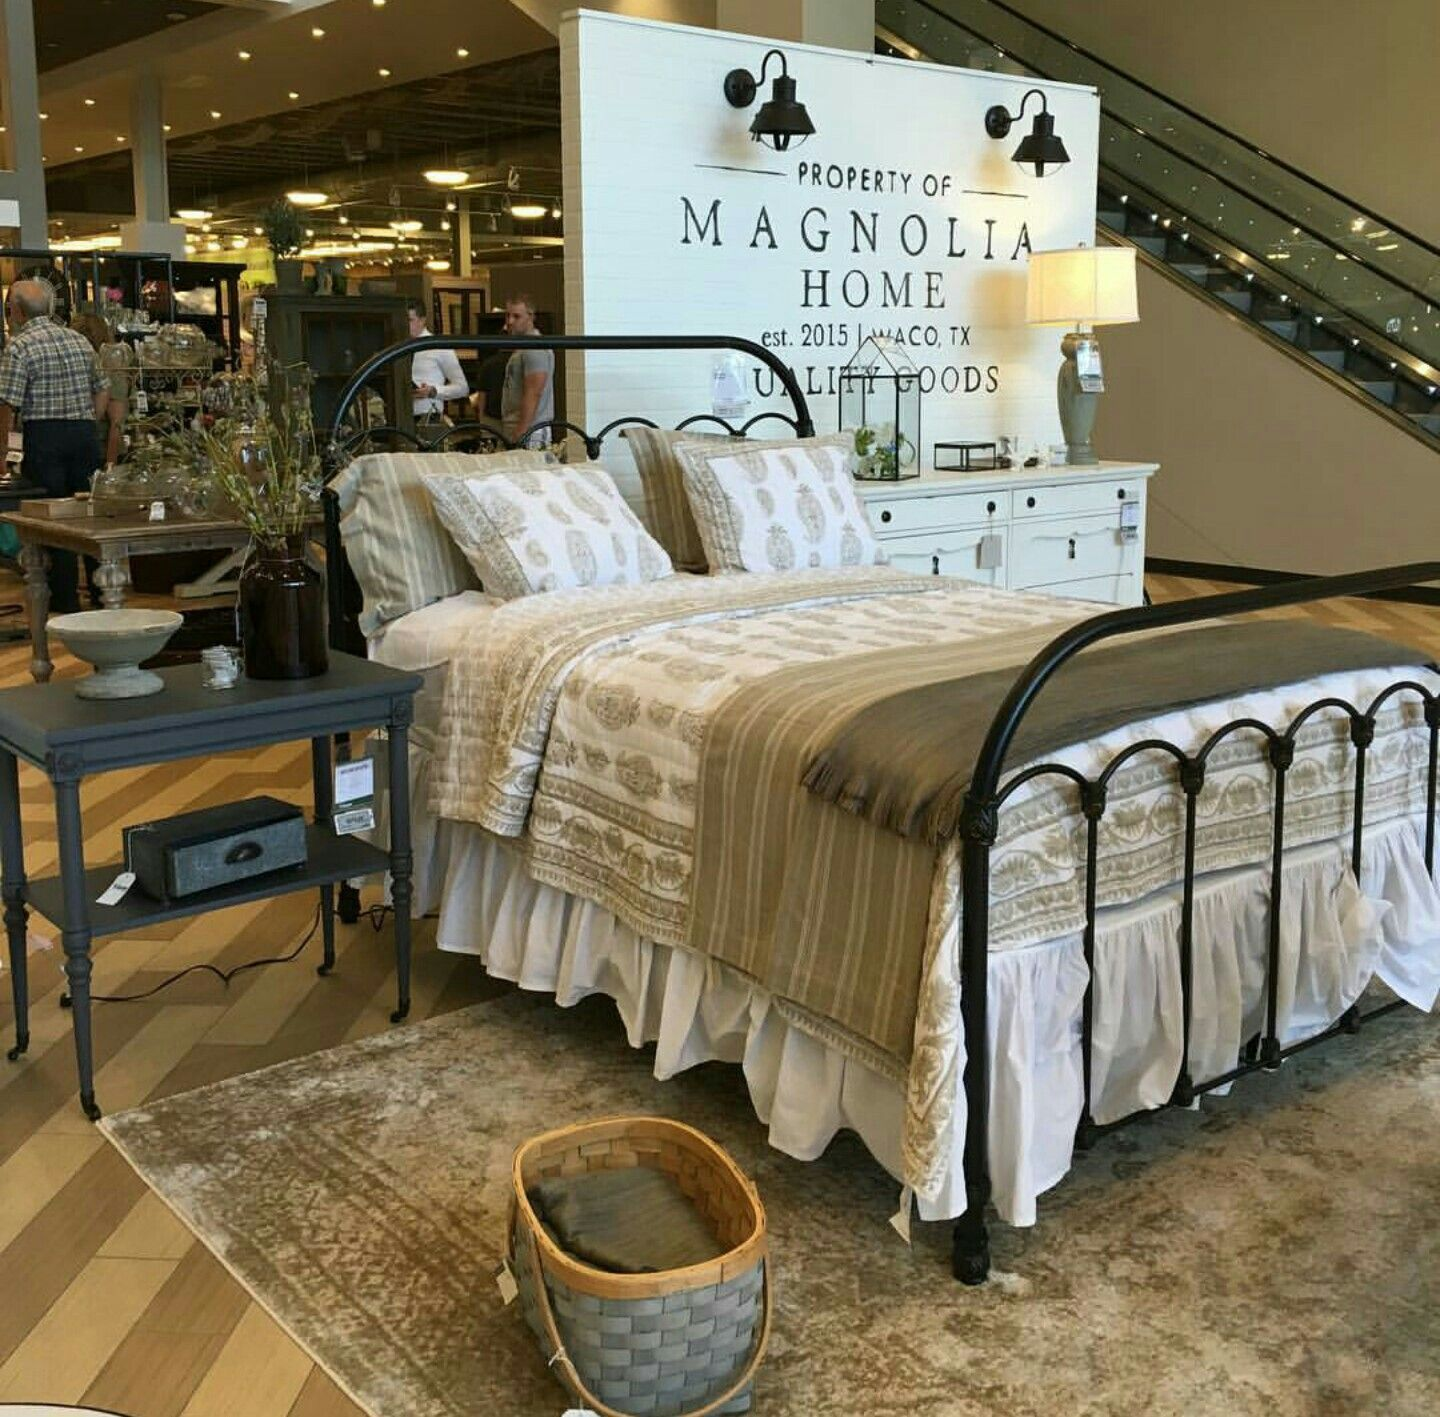 Magnolia bed gaines in 2019 magnolia home bedding magnolia homes joanna gaines furniture - Magnolia bedding joanna gaines ...